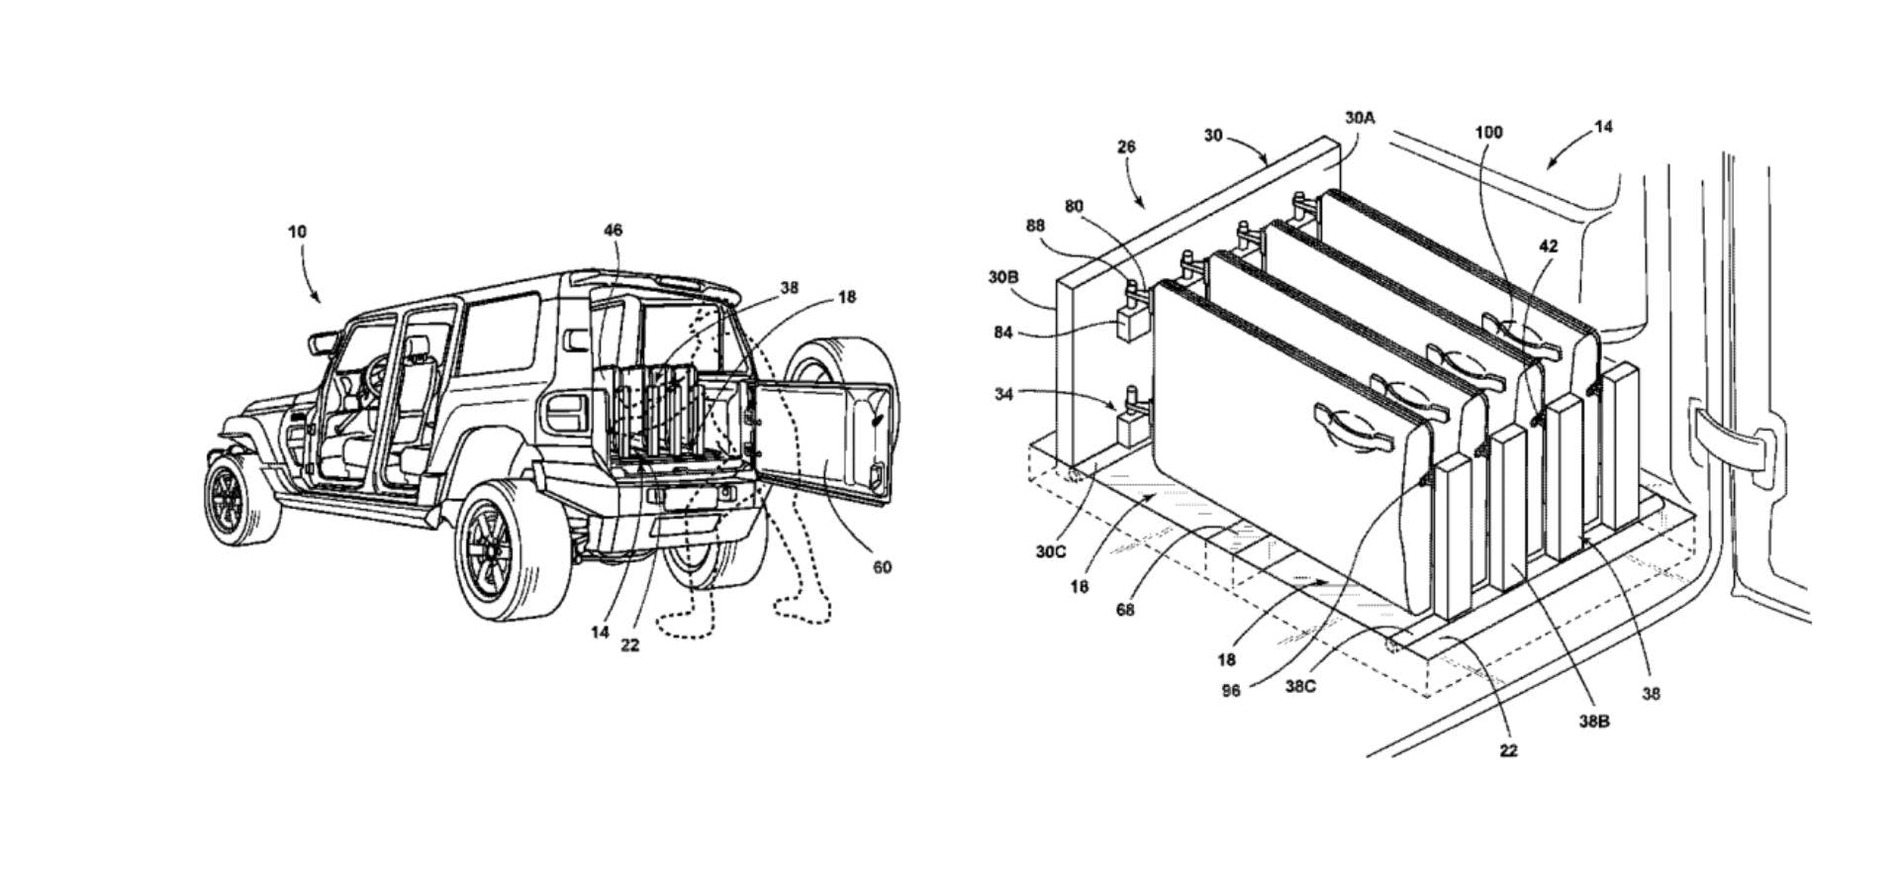 nine door patents that could apply to the 2021 bronco   2021 ford bronco forum  info